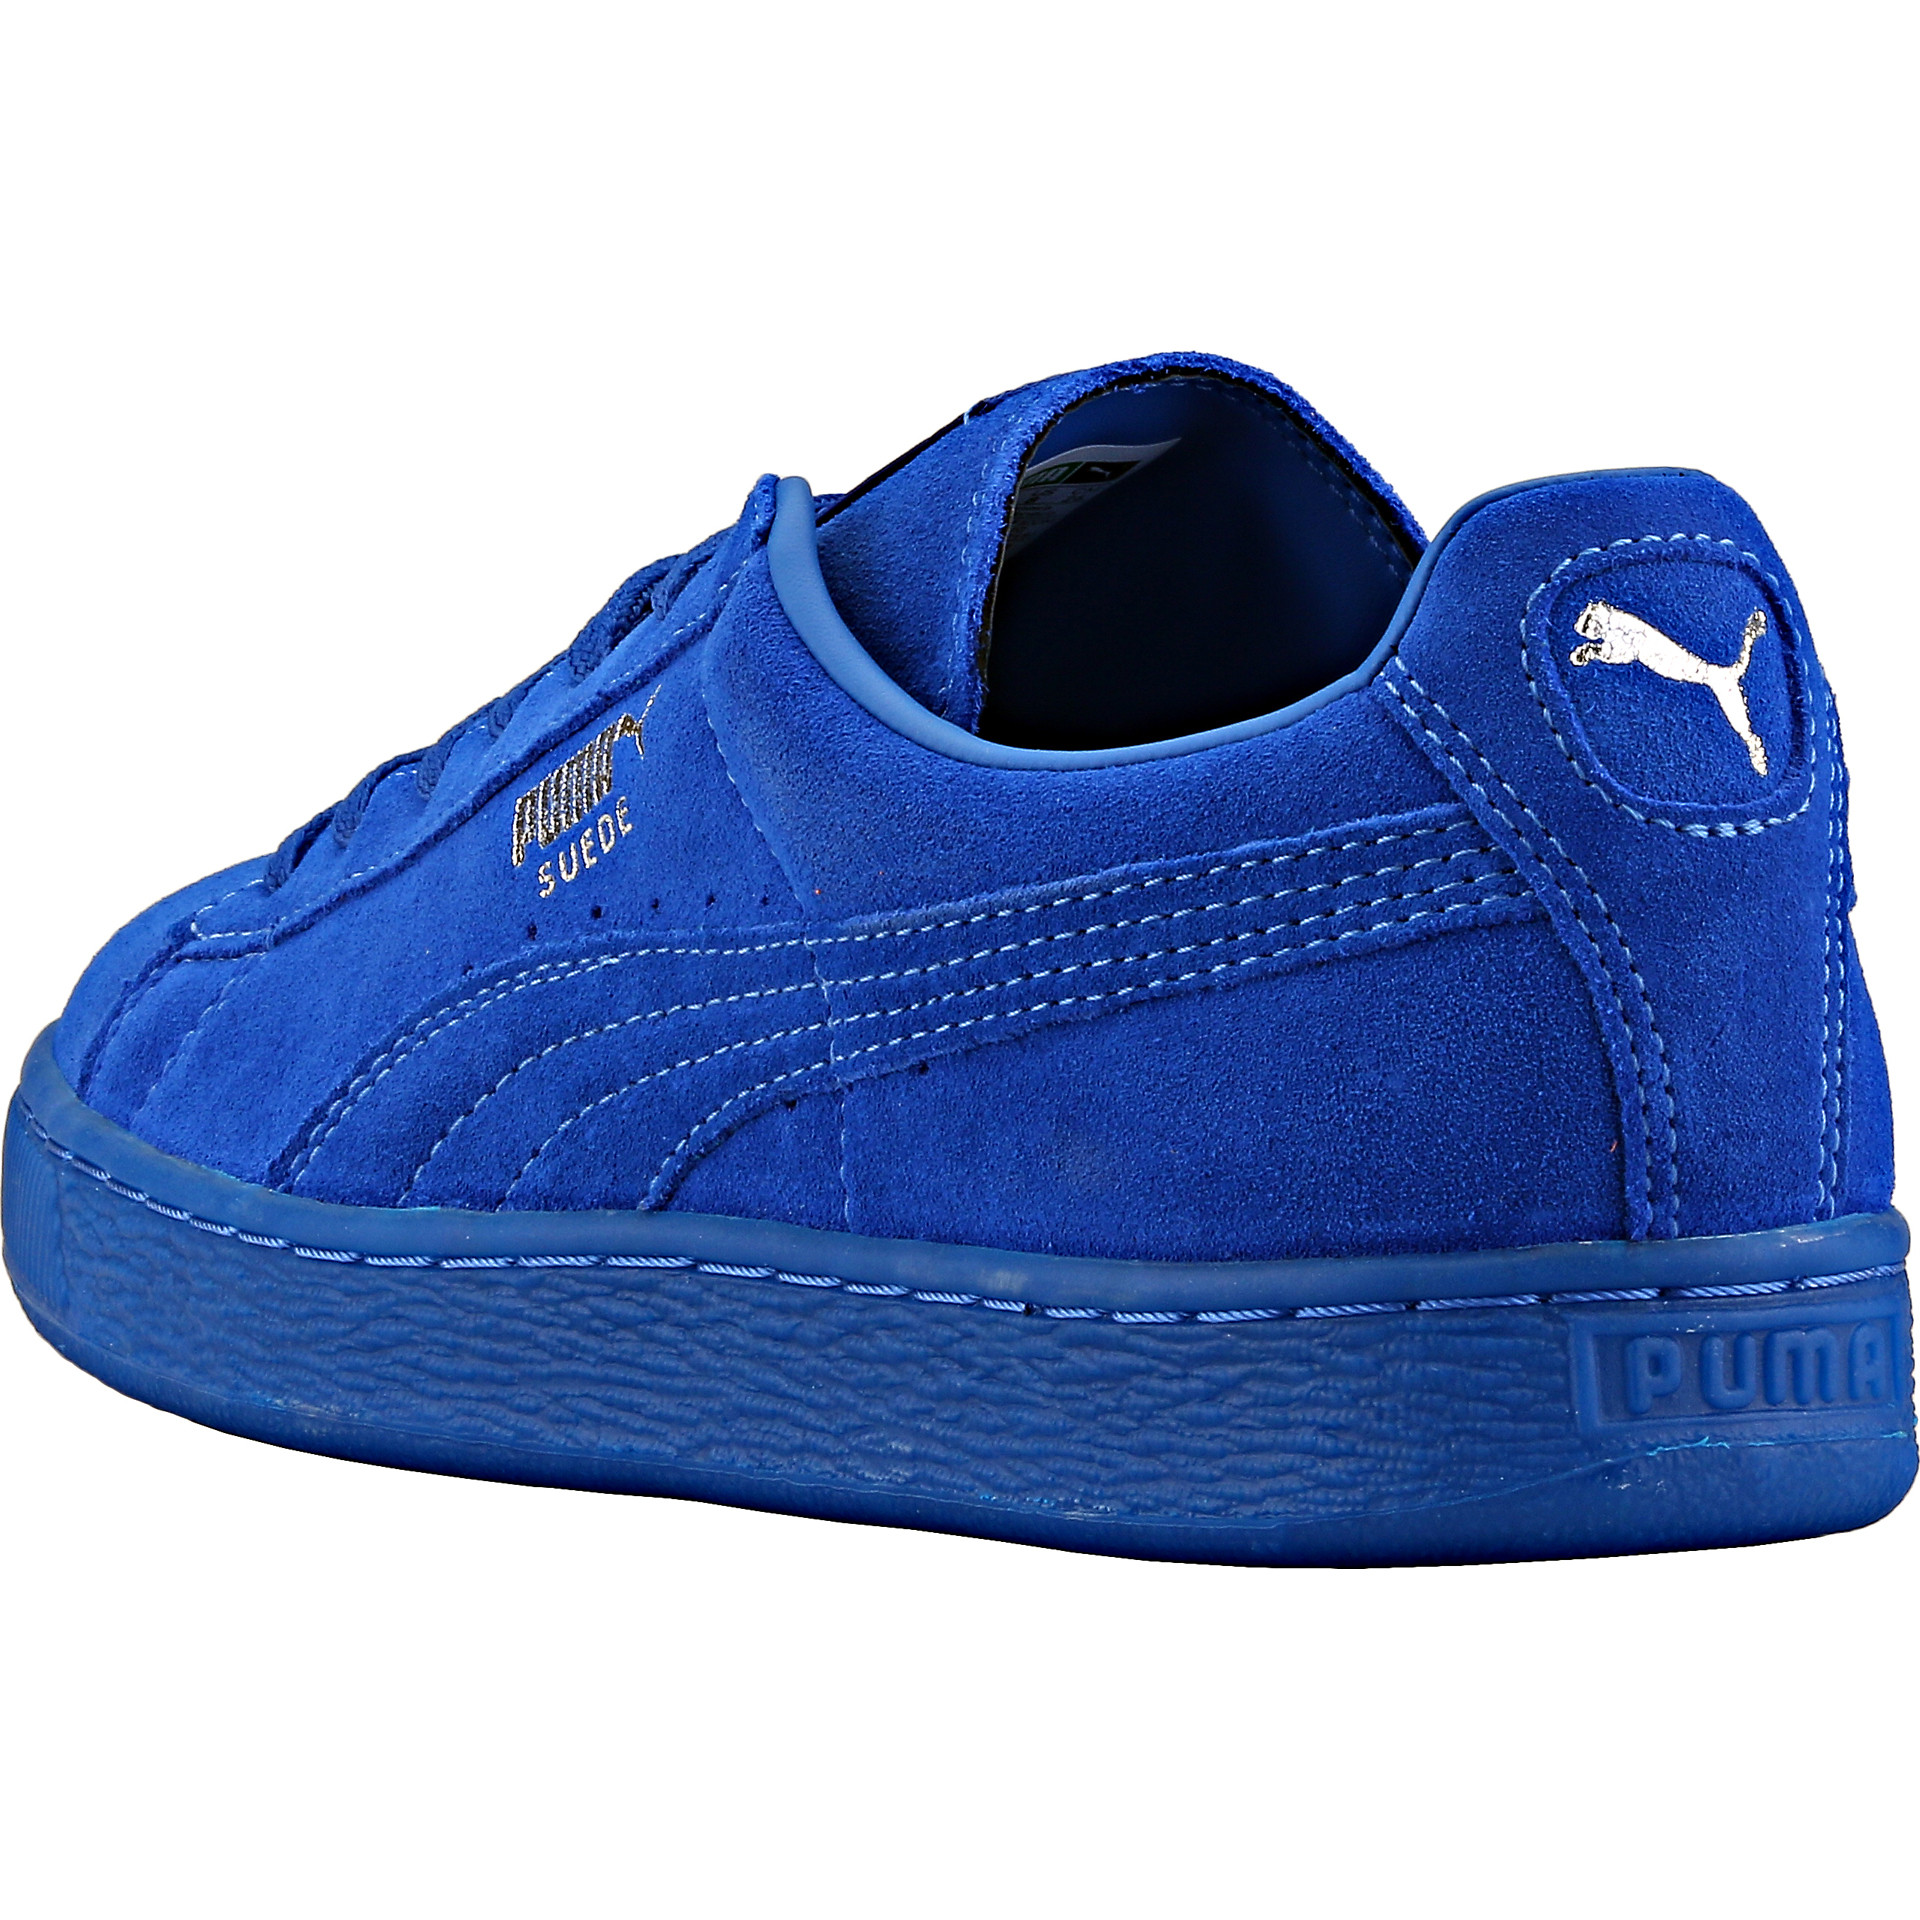 timeless design 2794f 9d400 MasterSource • Puma Classic Suede Royal Iced Sneaker : Men's ...